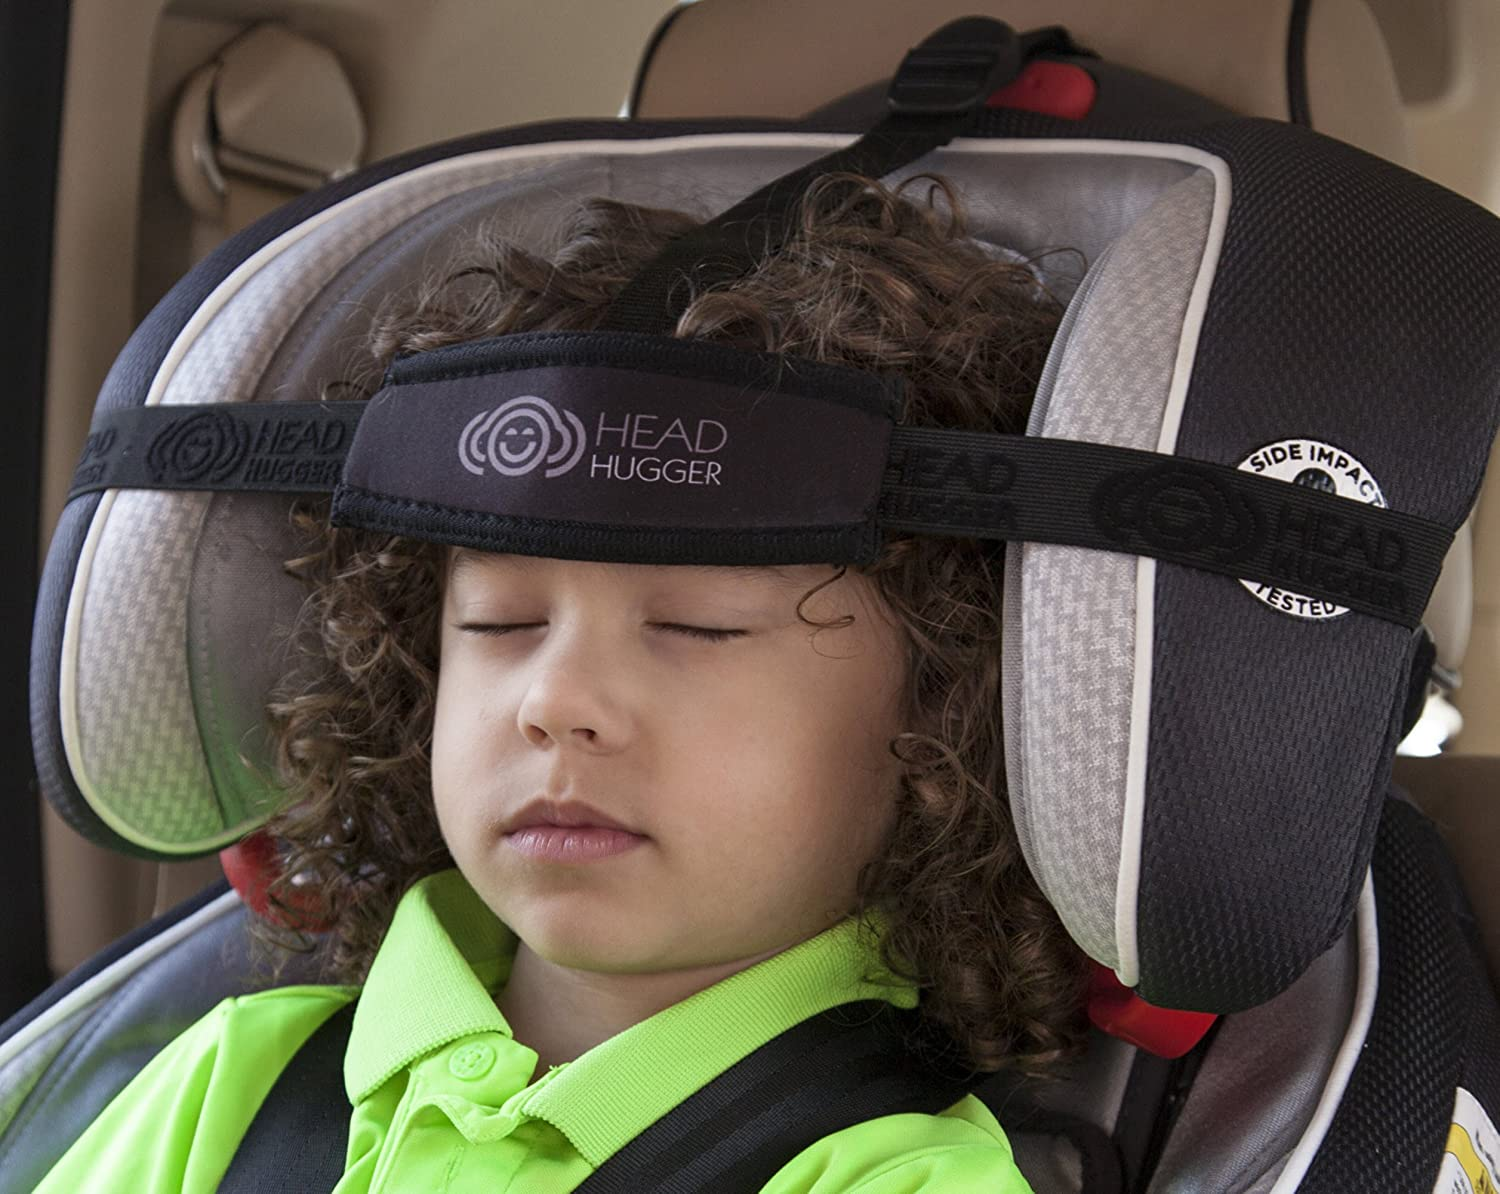 Head Hugger - Car Seat Head Support Device That Cradles the Head and Eliminates Pressure on the Neck (Black) Inc.